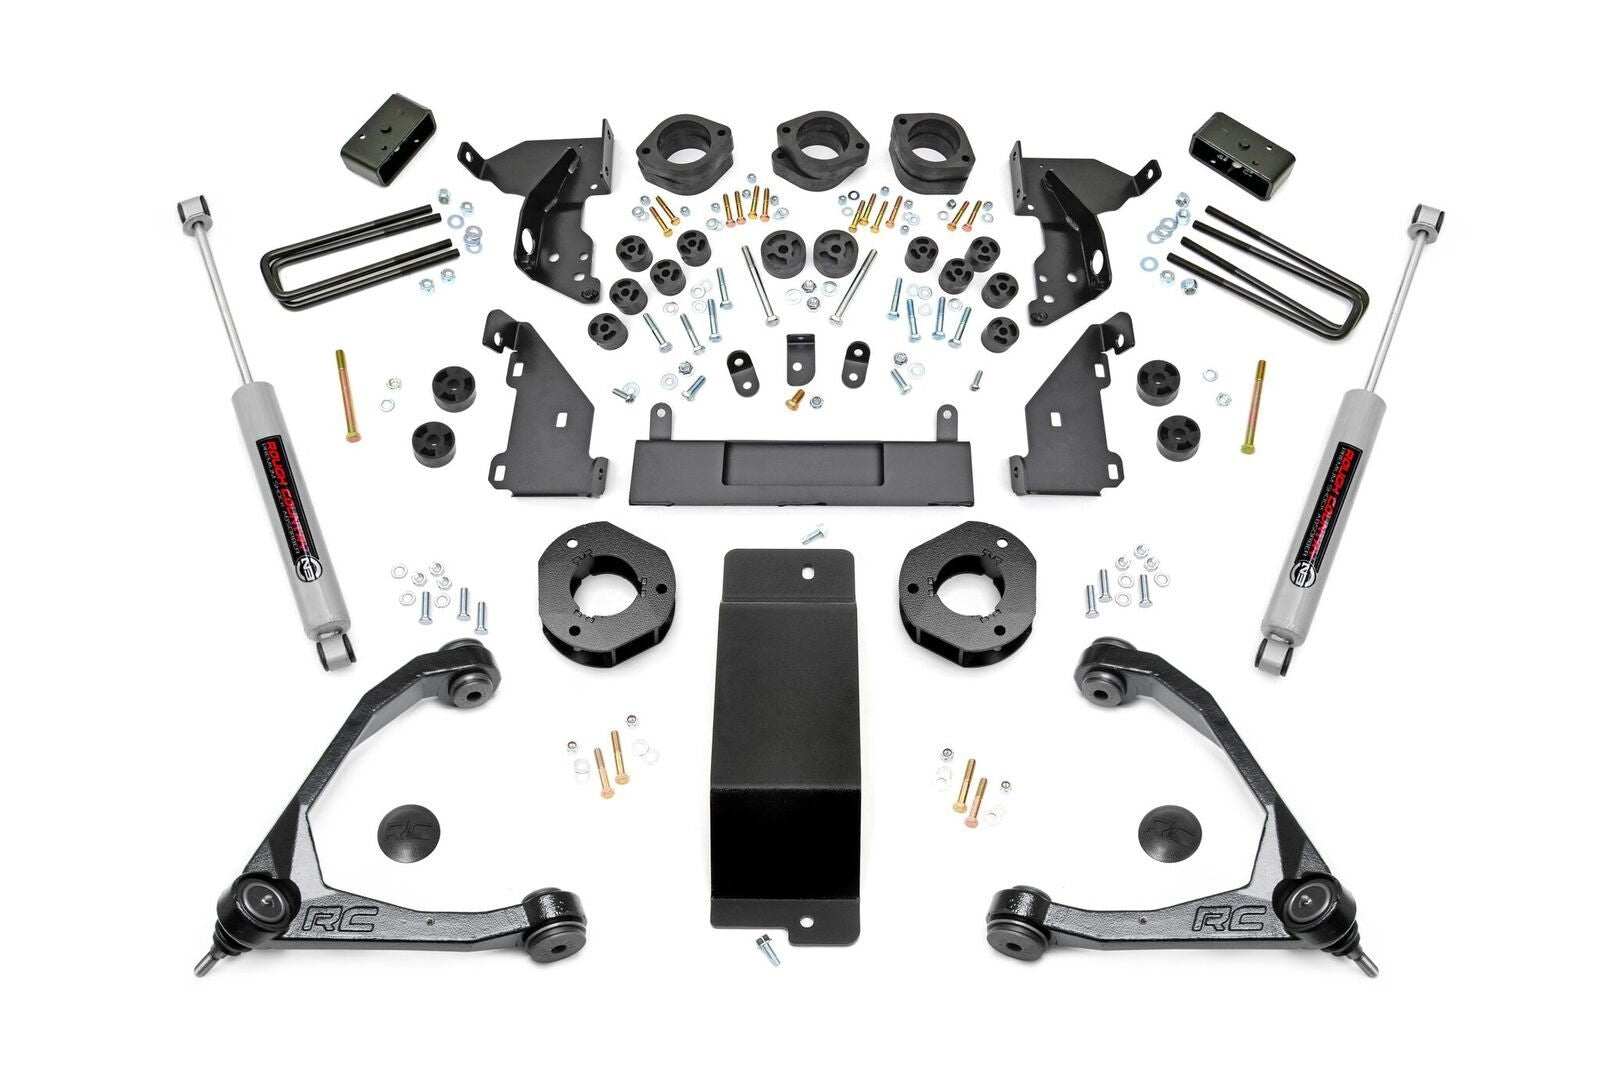 14-16 Chevy Silverado/GMC Sierra 1500 4.75 inch Rough Country Lift Kit - Elite Auto Customs